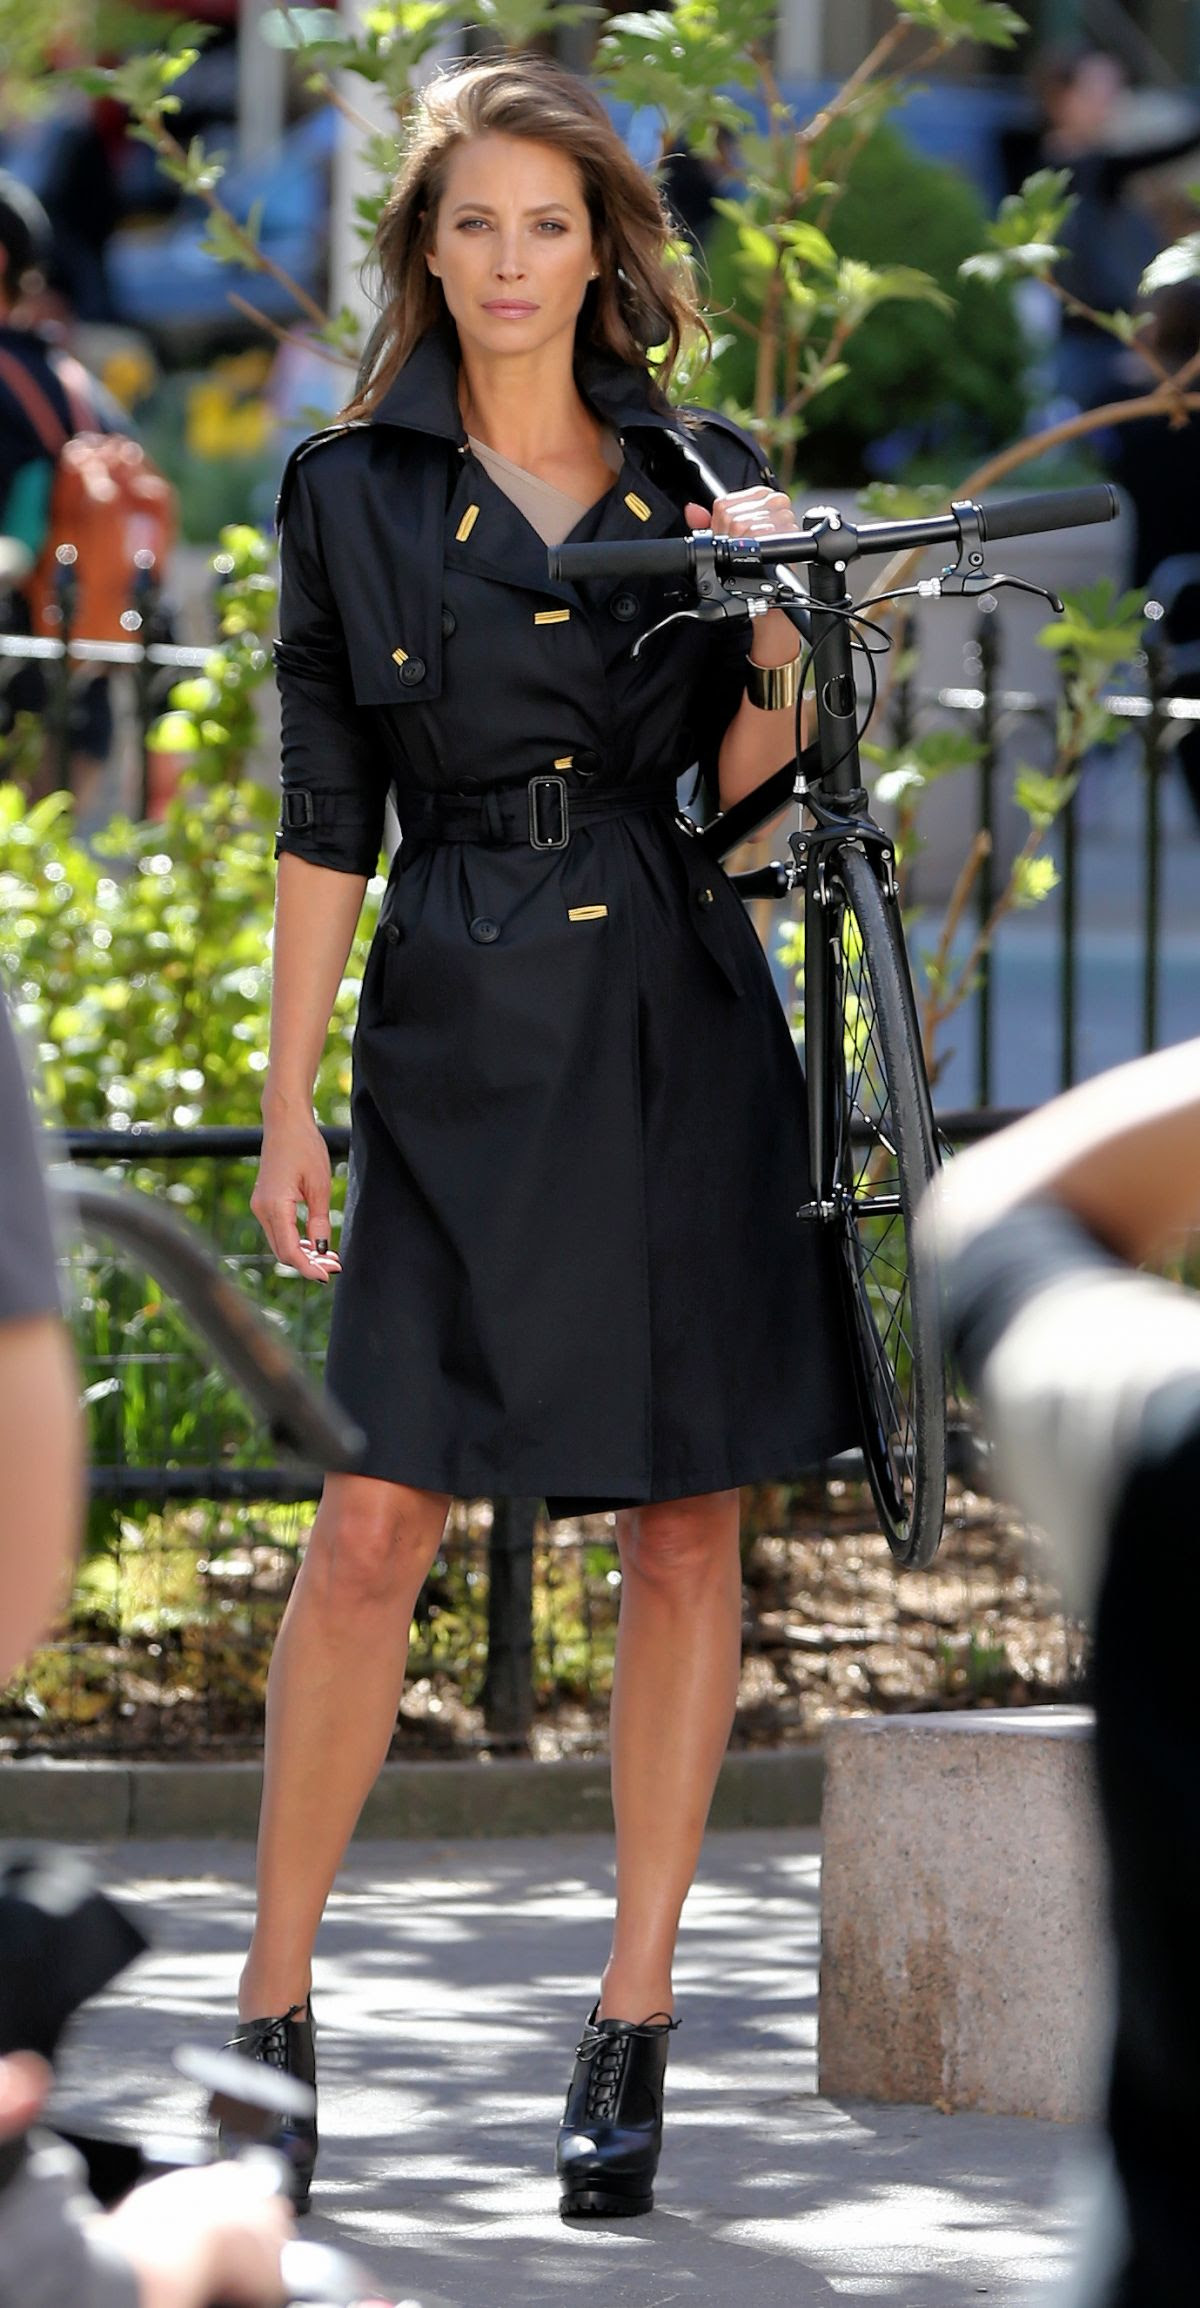 CHRISTY TURLINGTON on the Set of a Photoshoot in New York 04/21/2016